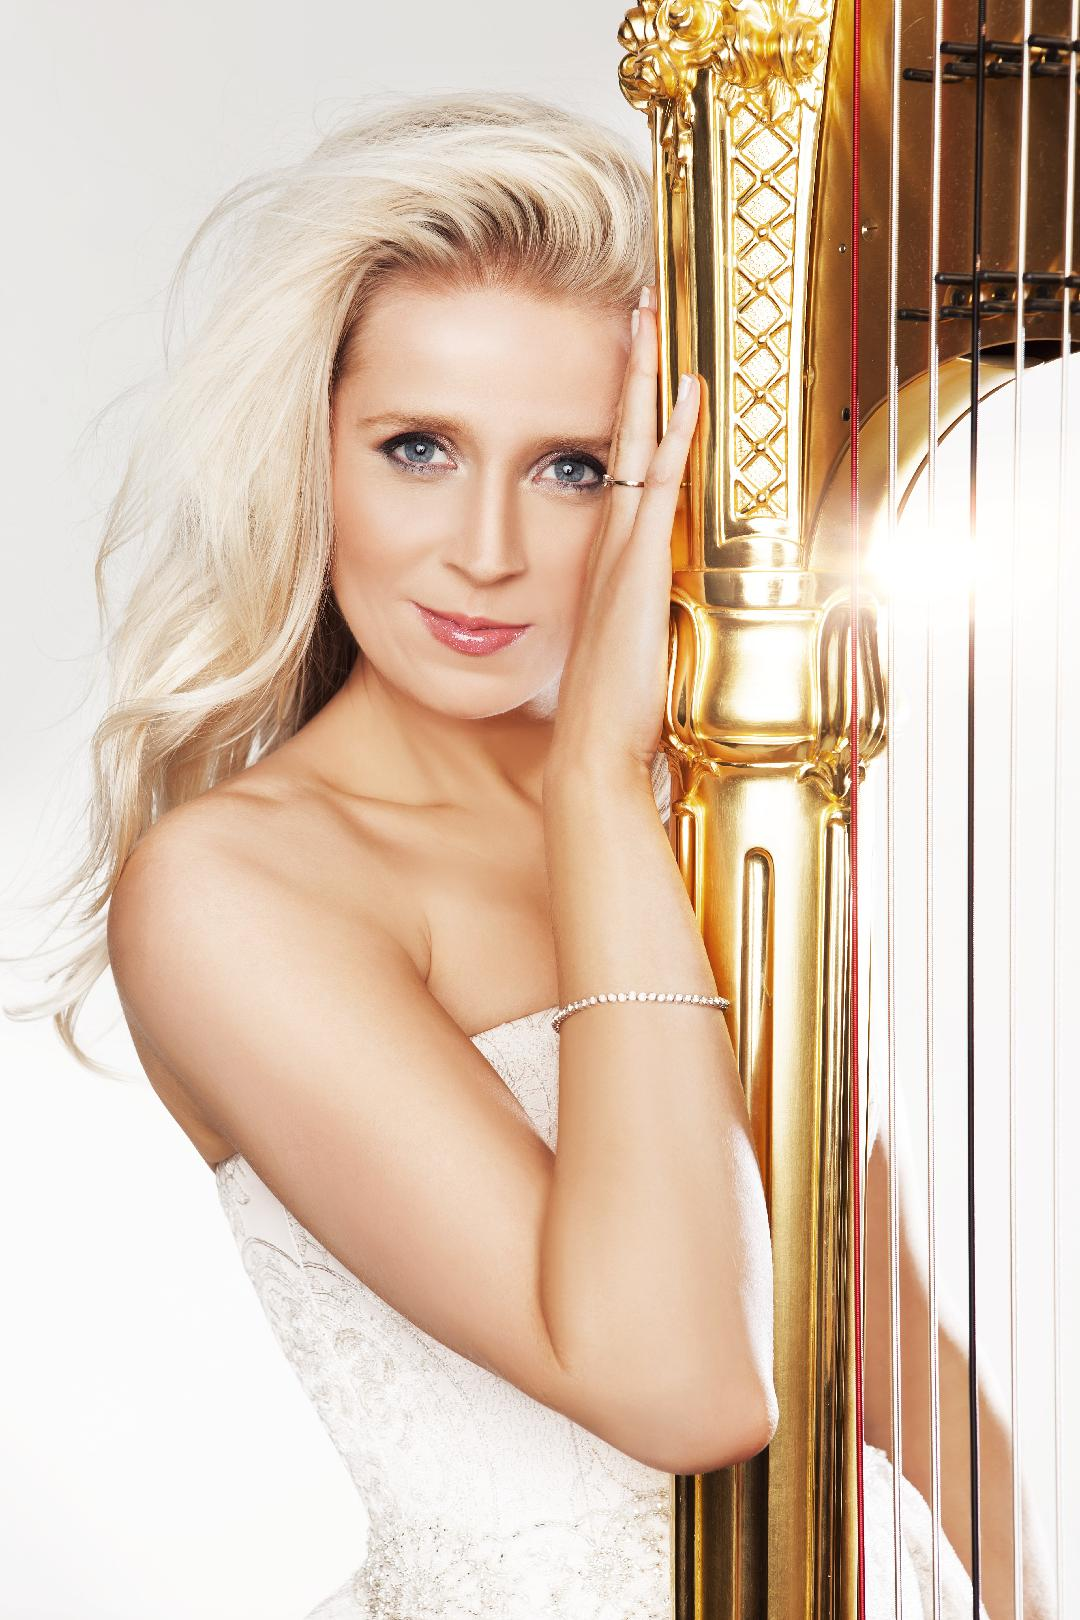 Claire Jones - Royal Harpist to HRH the Prince of Wales (2007-2011)